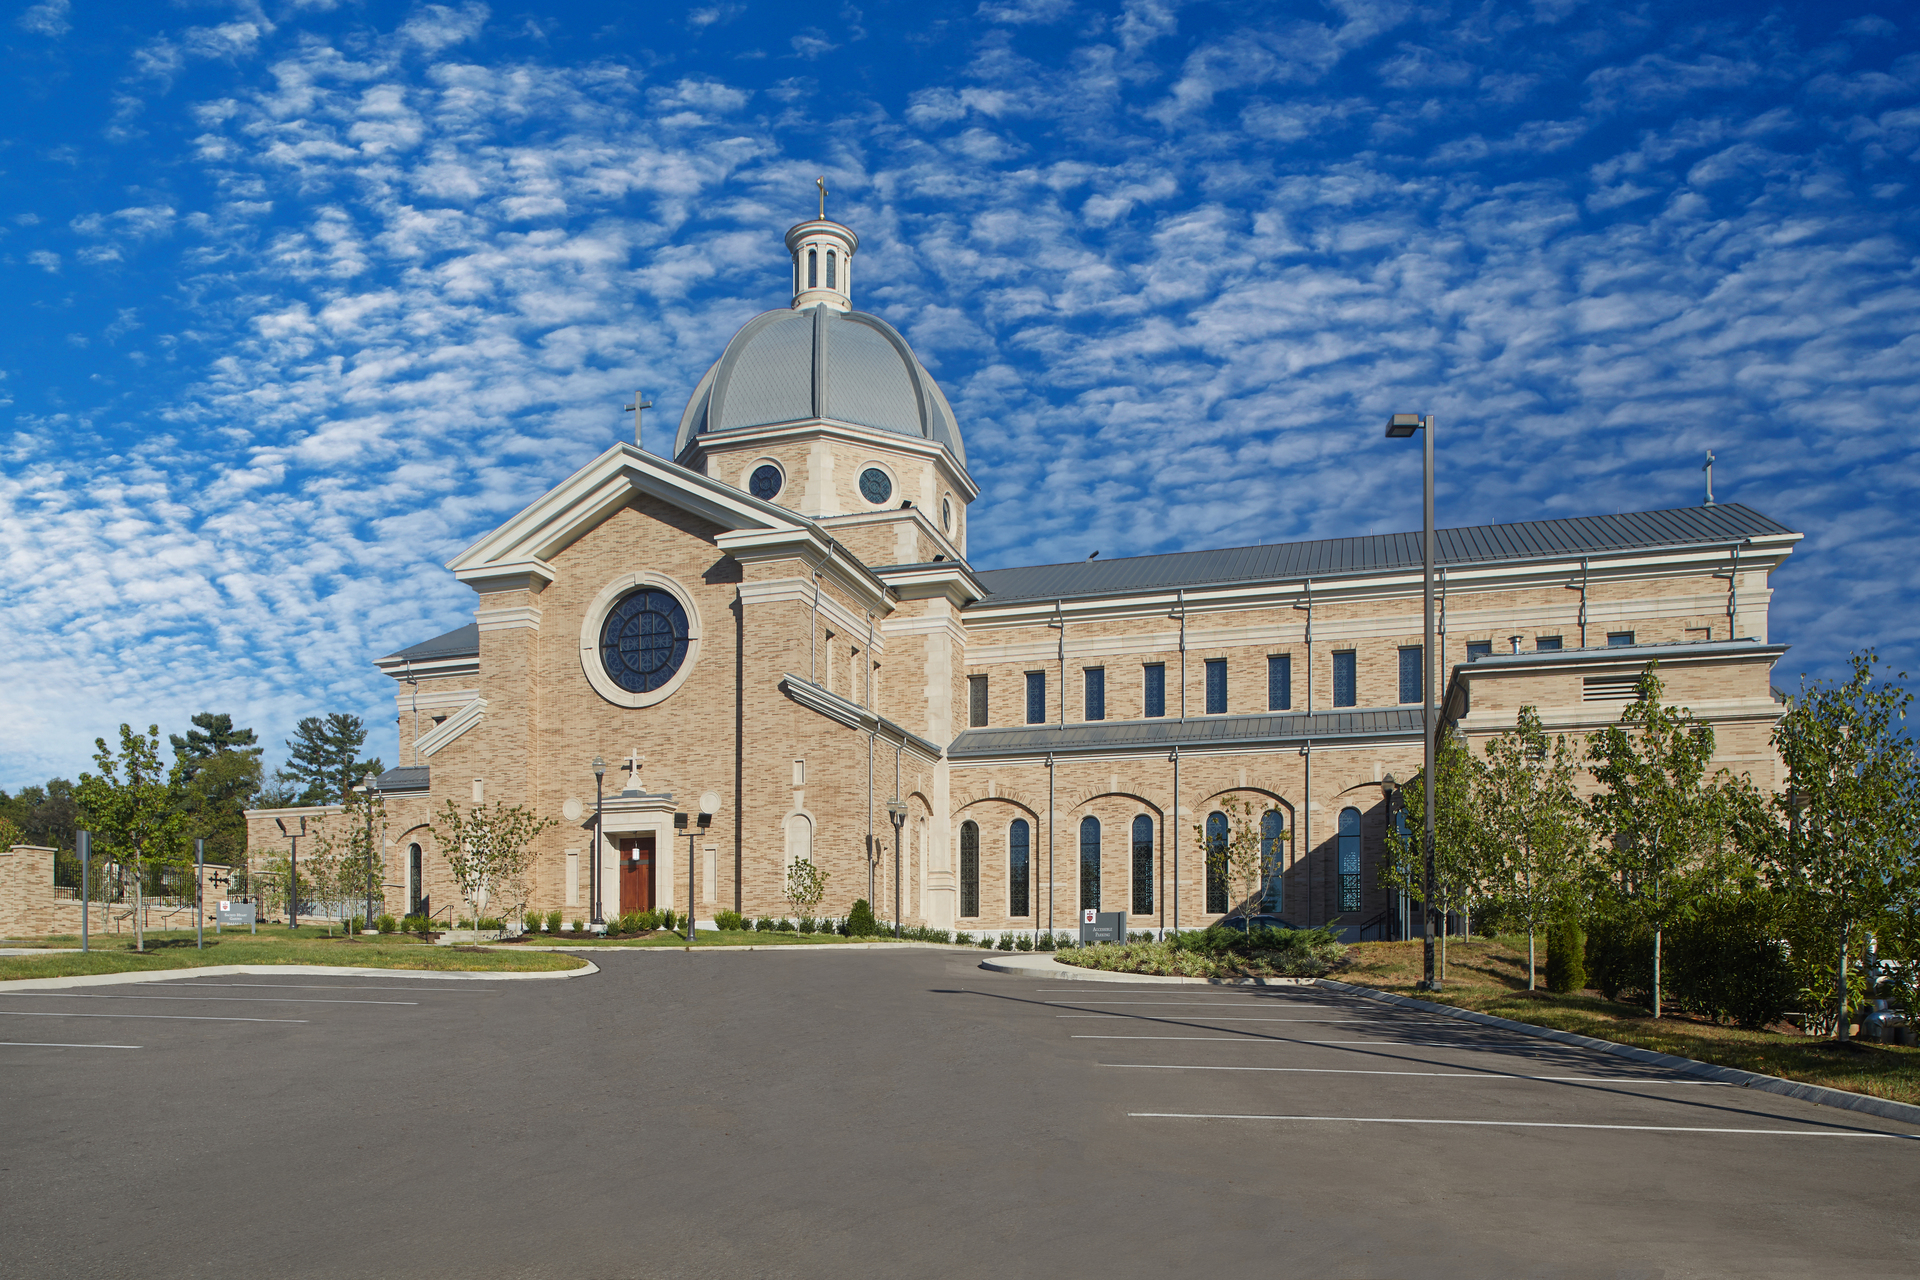 """Inside and out, McCrery's design utilizes the classical orders of architecture – Doric, Ionic, Corinthian, and Composite – to create what he calls a """"highly sophisticated architectural whole."""" Belden Brick's Mayo Blend Full Range brick provides the exterior for the church.  Photo by Kaminski Studios.  Photo by Kaminski Studios"""